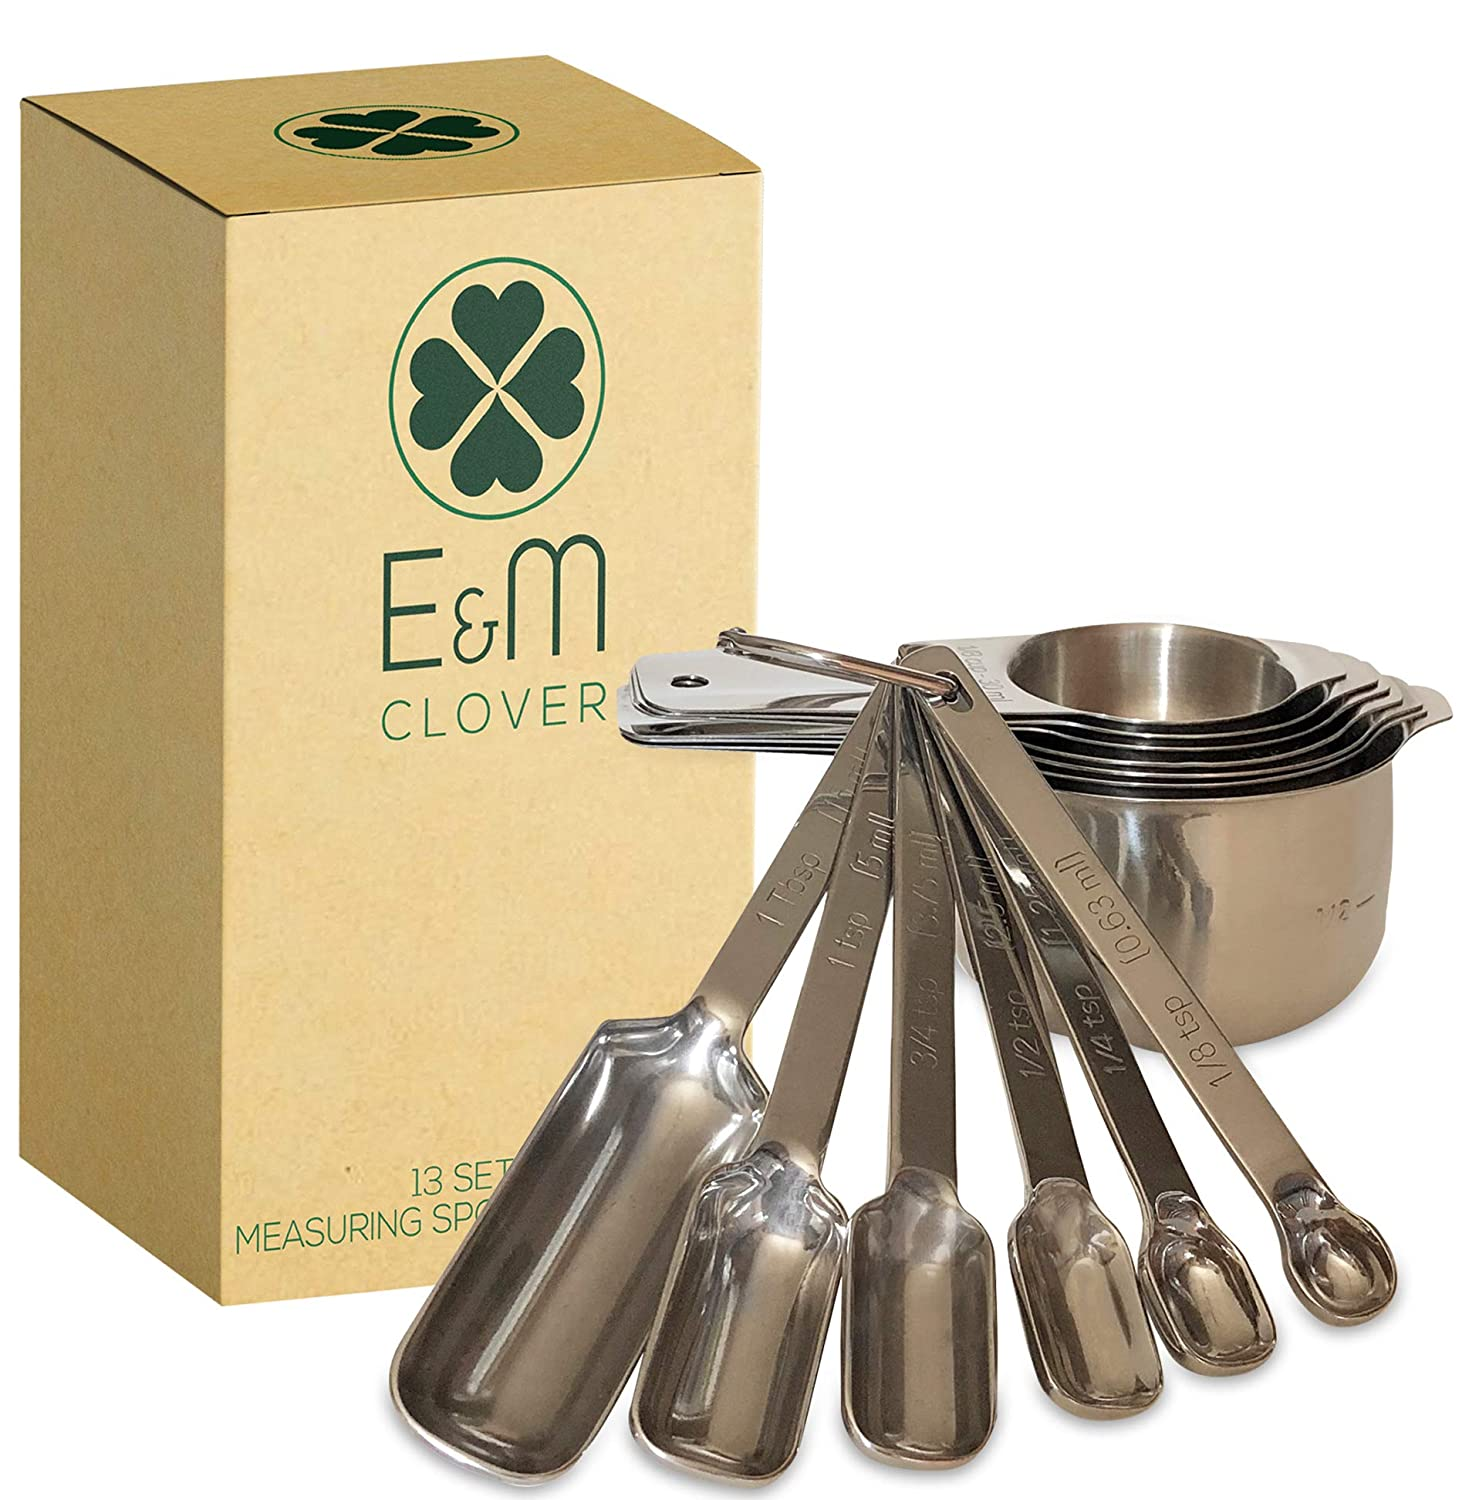 Measuring Cups and Spoons Set by E&M CLOVER Stainless Steel Stackable Dishwasher Safe w/Engraved Markings - Easy Read for Cooking/Baking, Metric Measurement, Heavy Duty, Dry/Liquid